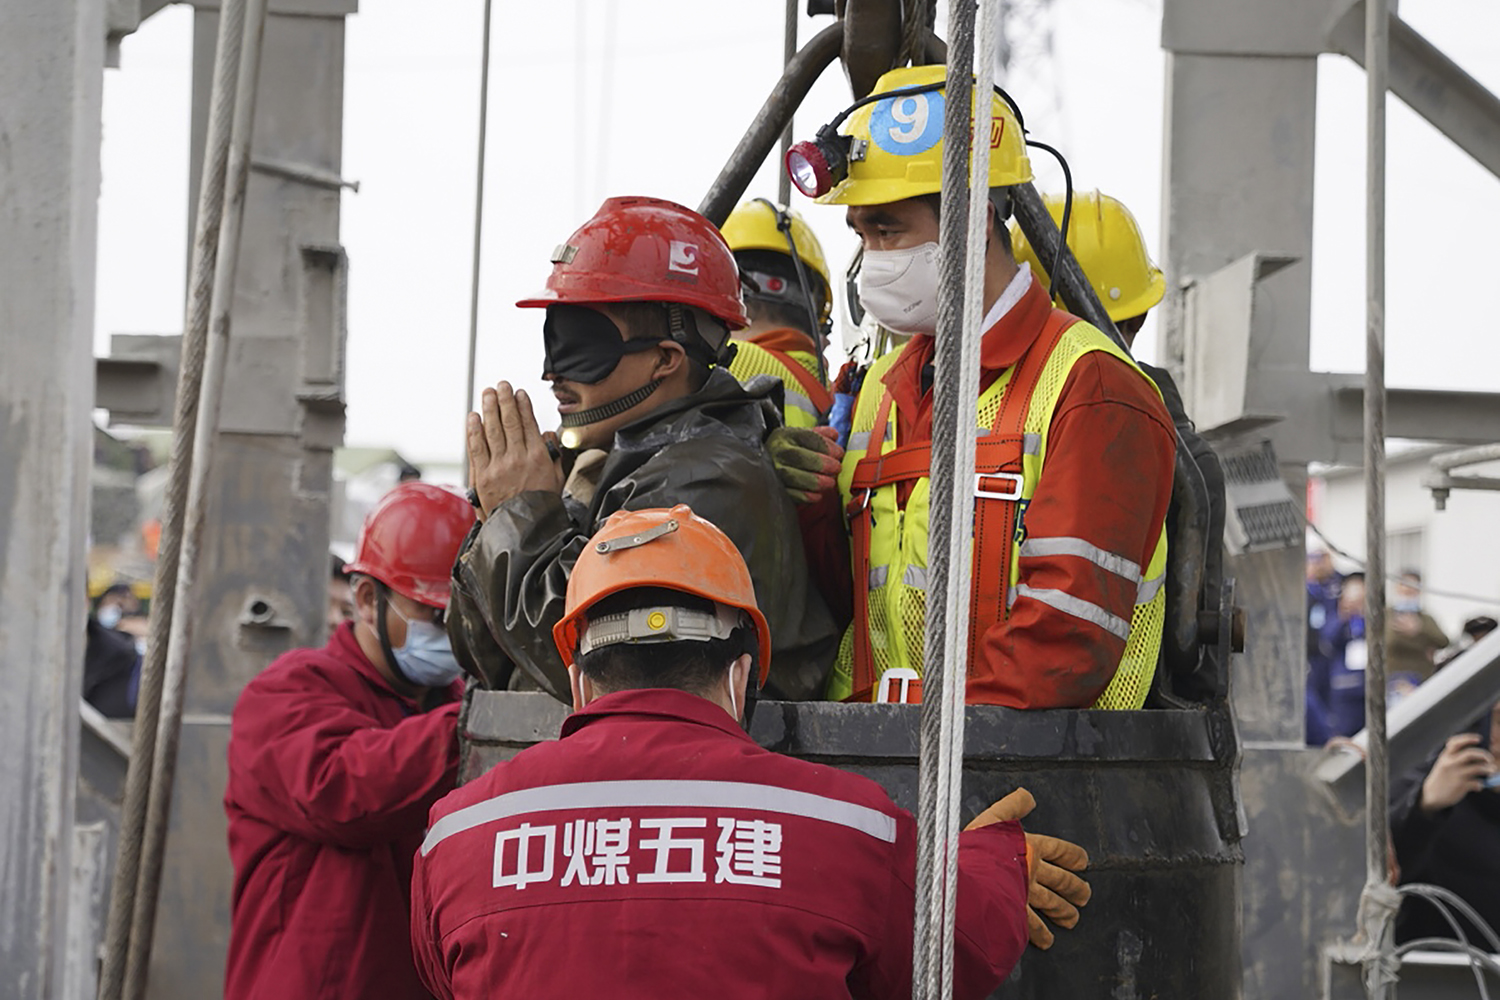 One of 22 Chinese miners trapped for two weeks after a gold mine explosion is saved in Qixia, in eastern China's Shandong province, on Jan. 24. At least 10 miners died. STR/CNS/AFP via Getty Images